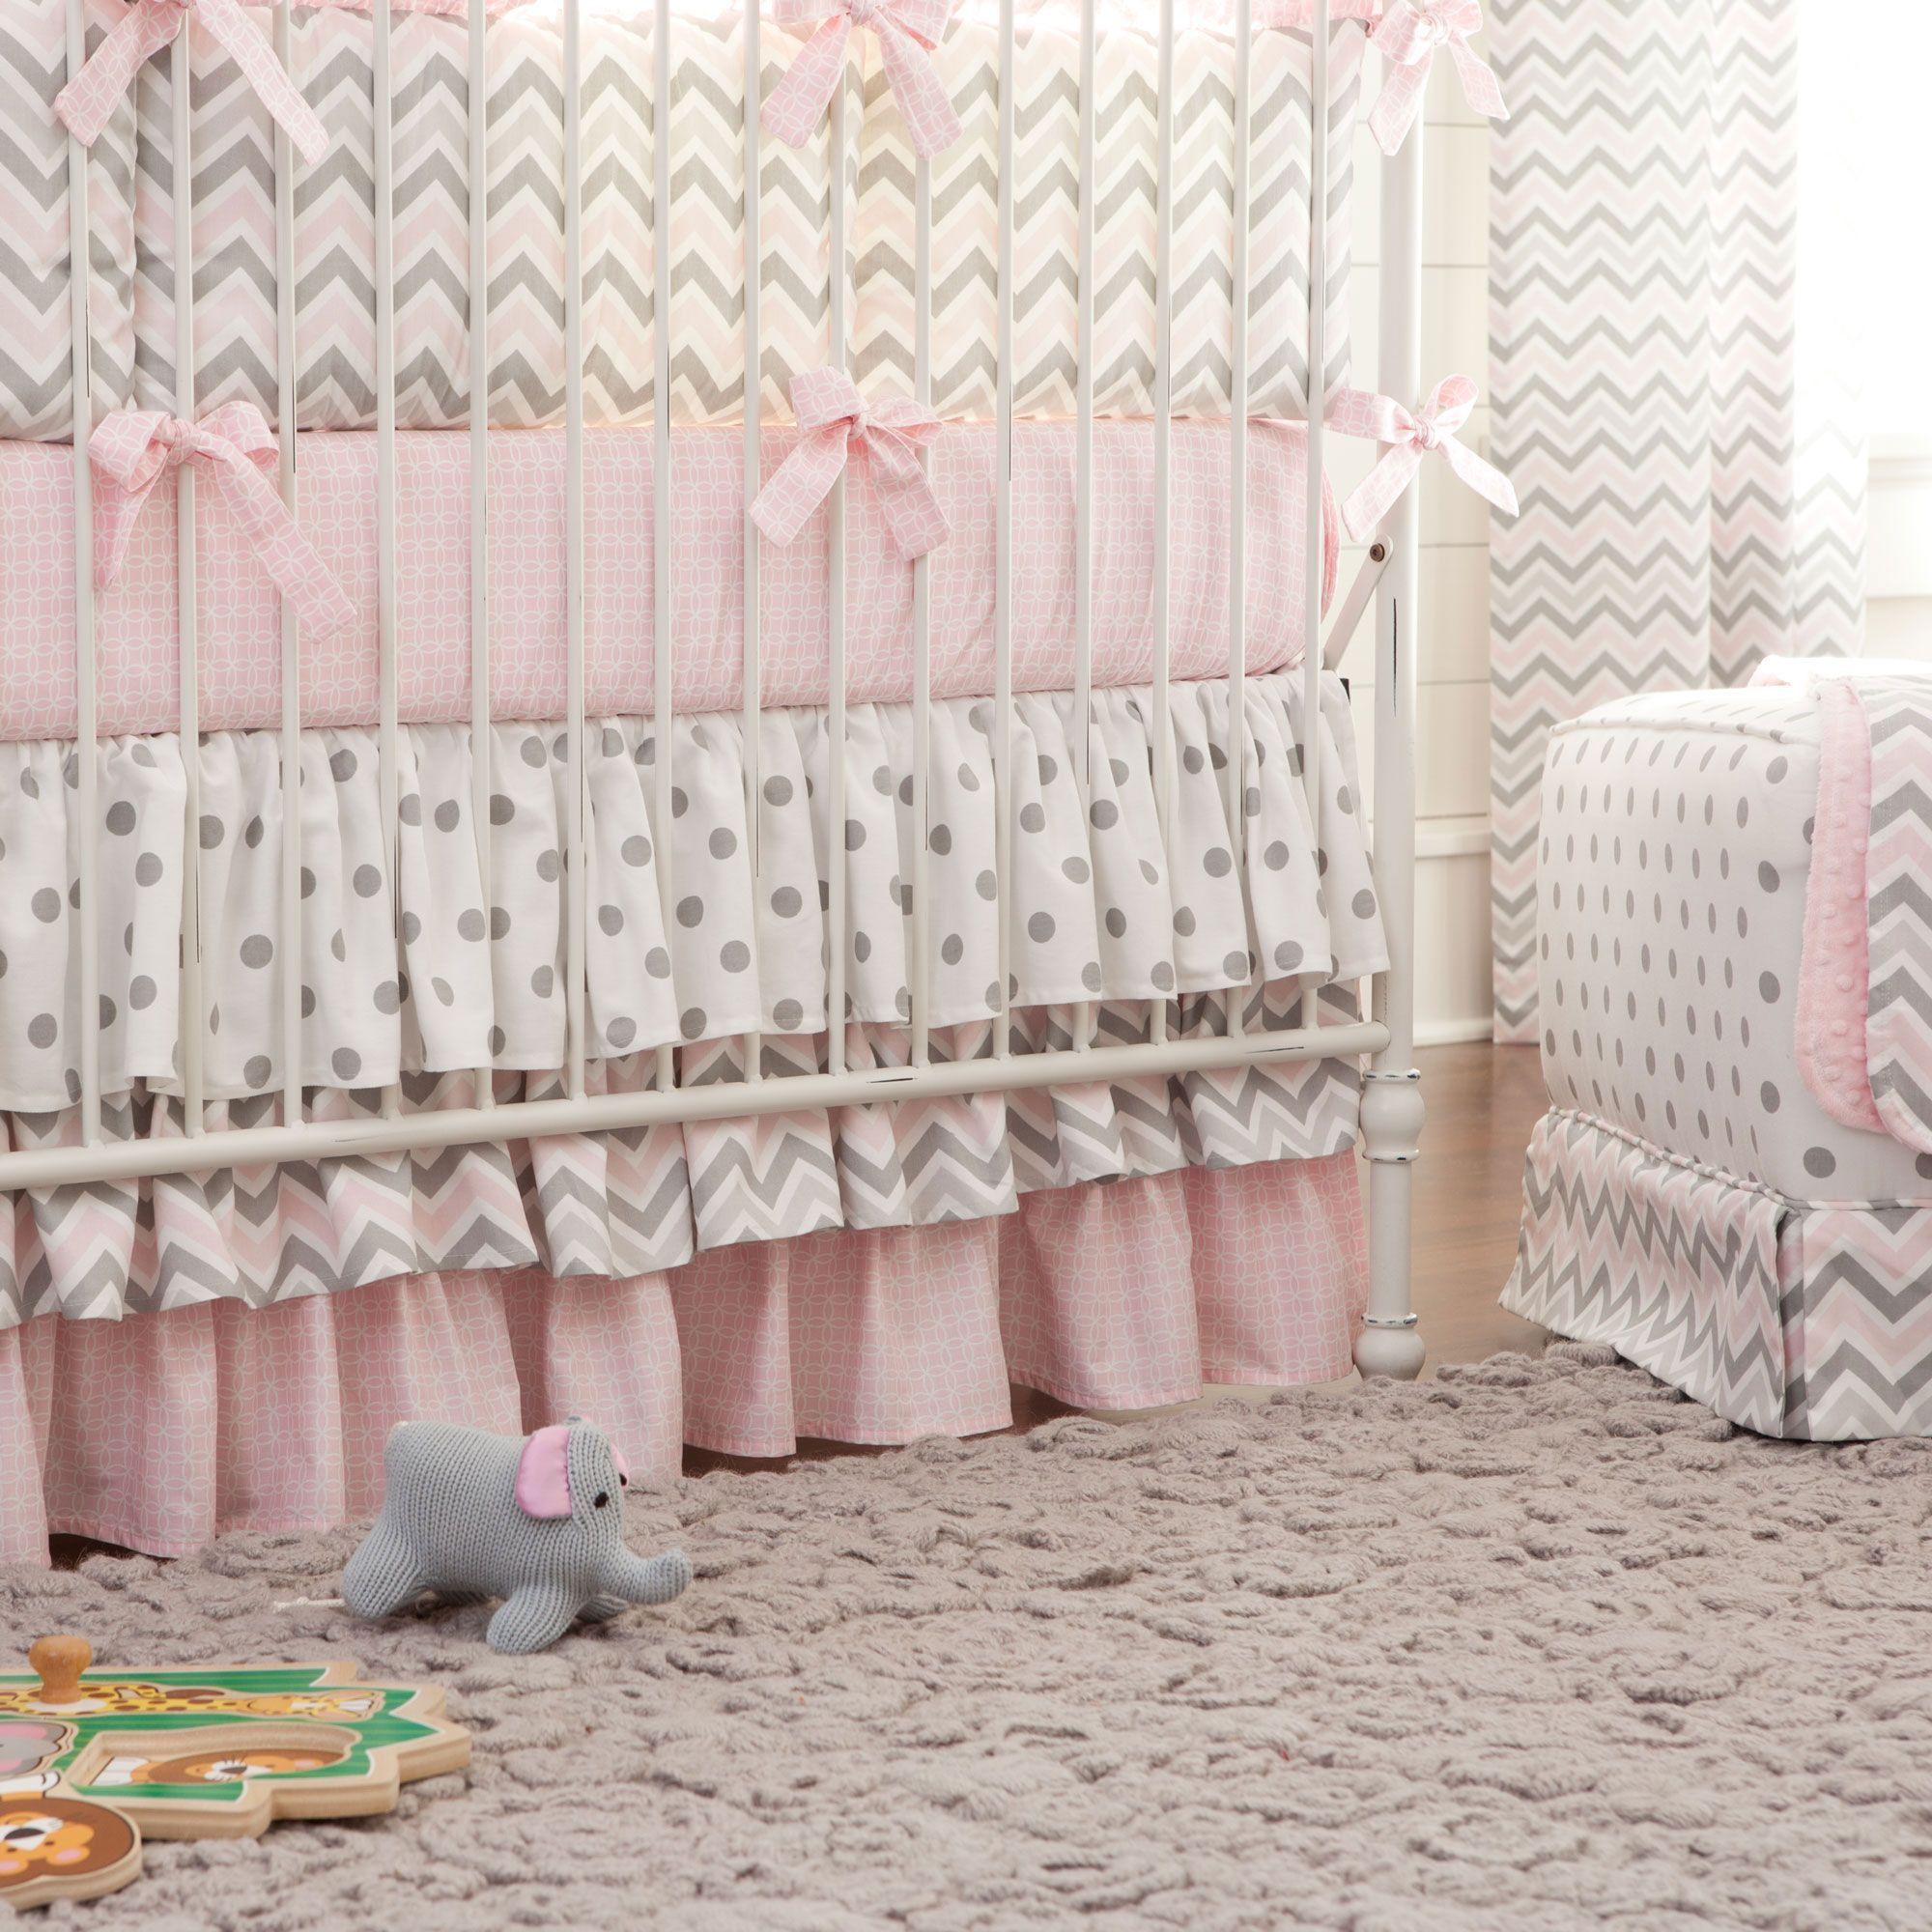 beddings sheet baby blanket fitted accessories pleate pleat bedding crib skirt box comforter